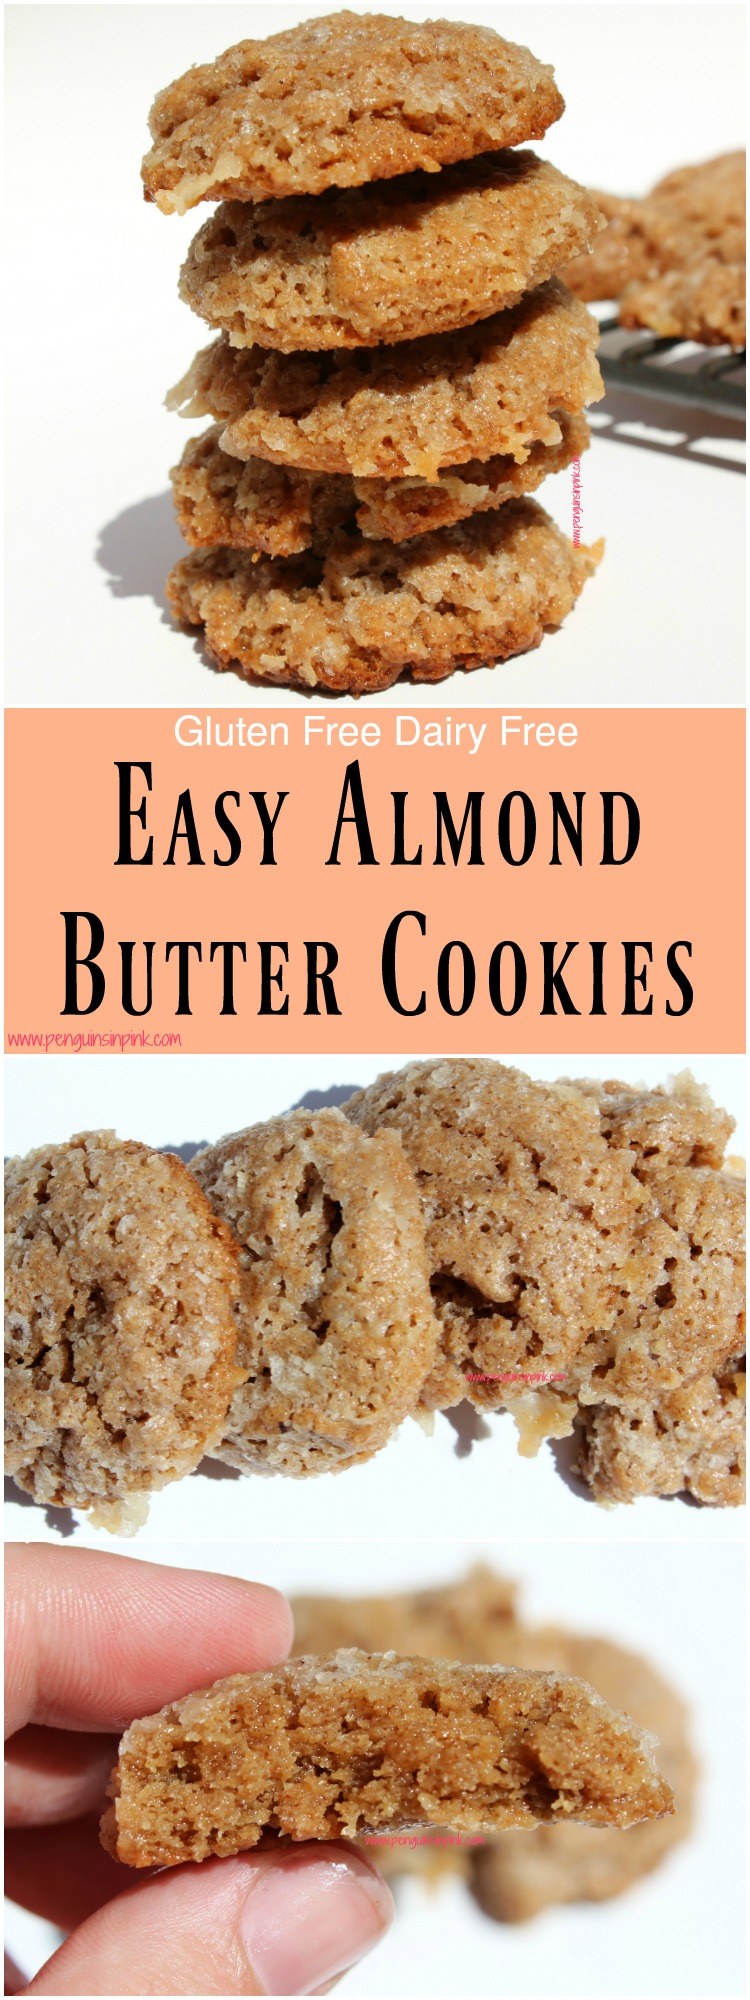 Easy Almond Butter Cookies - I love that these almond butter cookies are gluten free, dairy free, and only contain 3 ingredients! Almond butter cookies are very chewy while still being crispy on the edges.